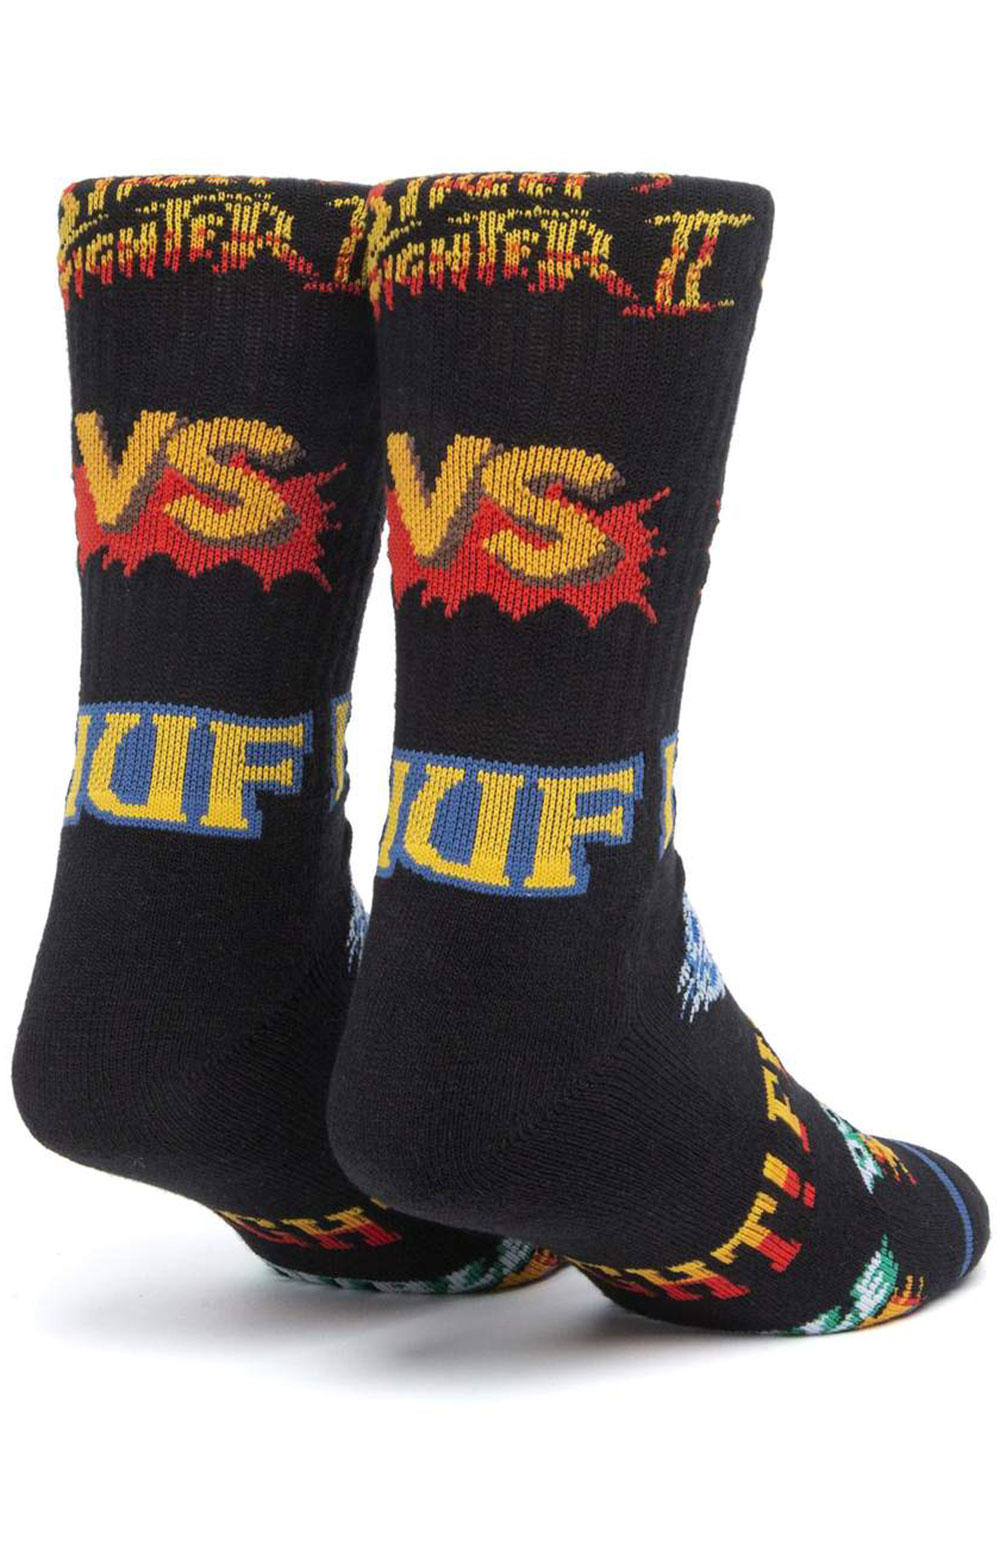 Street Fighter Graphic Socks  2